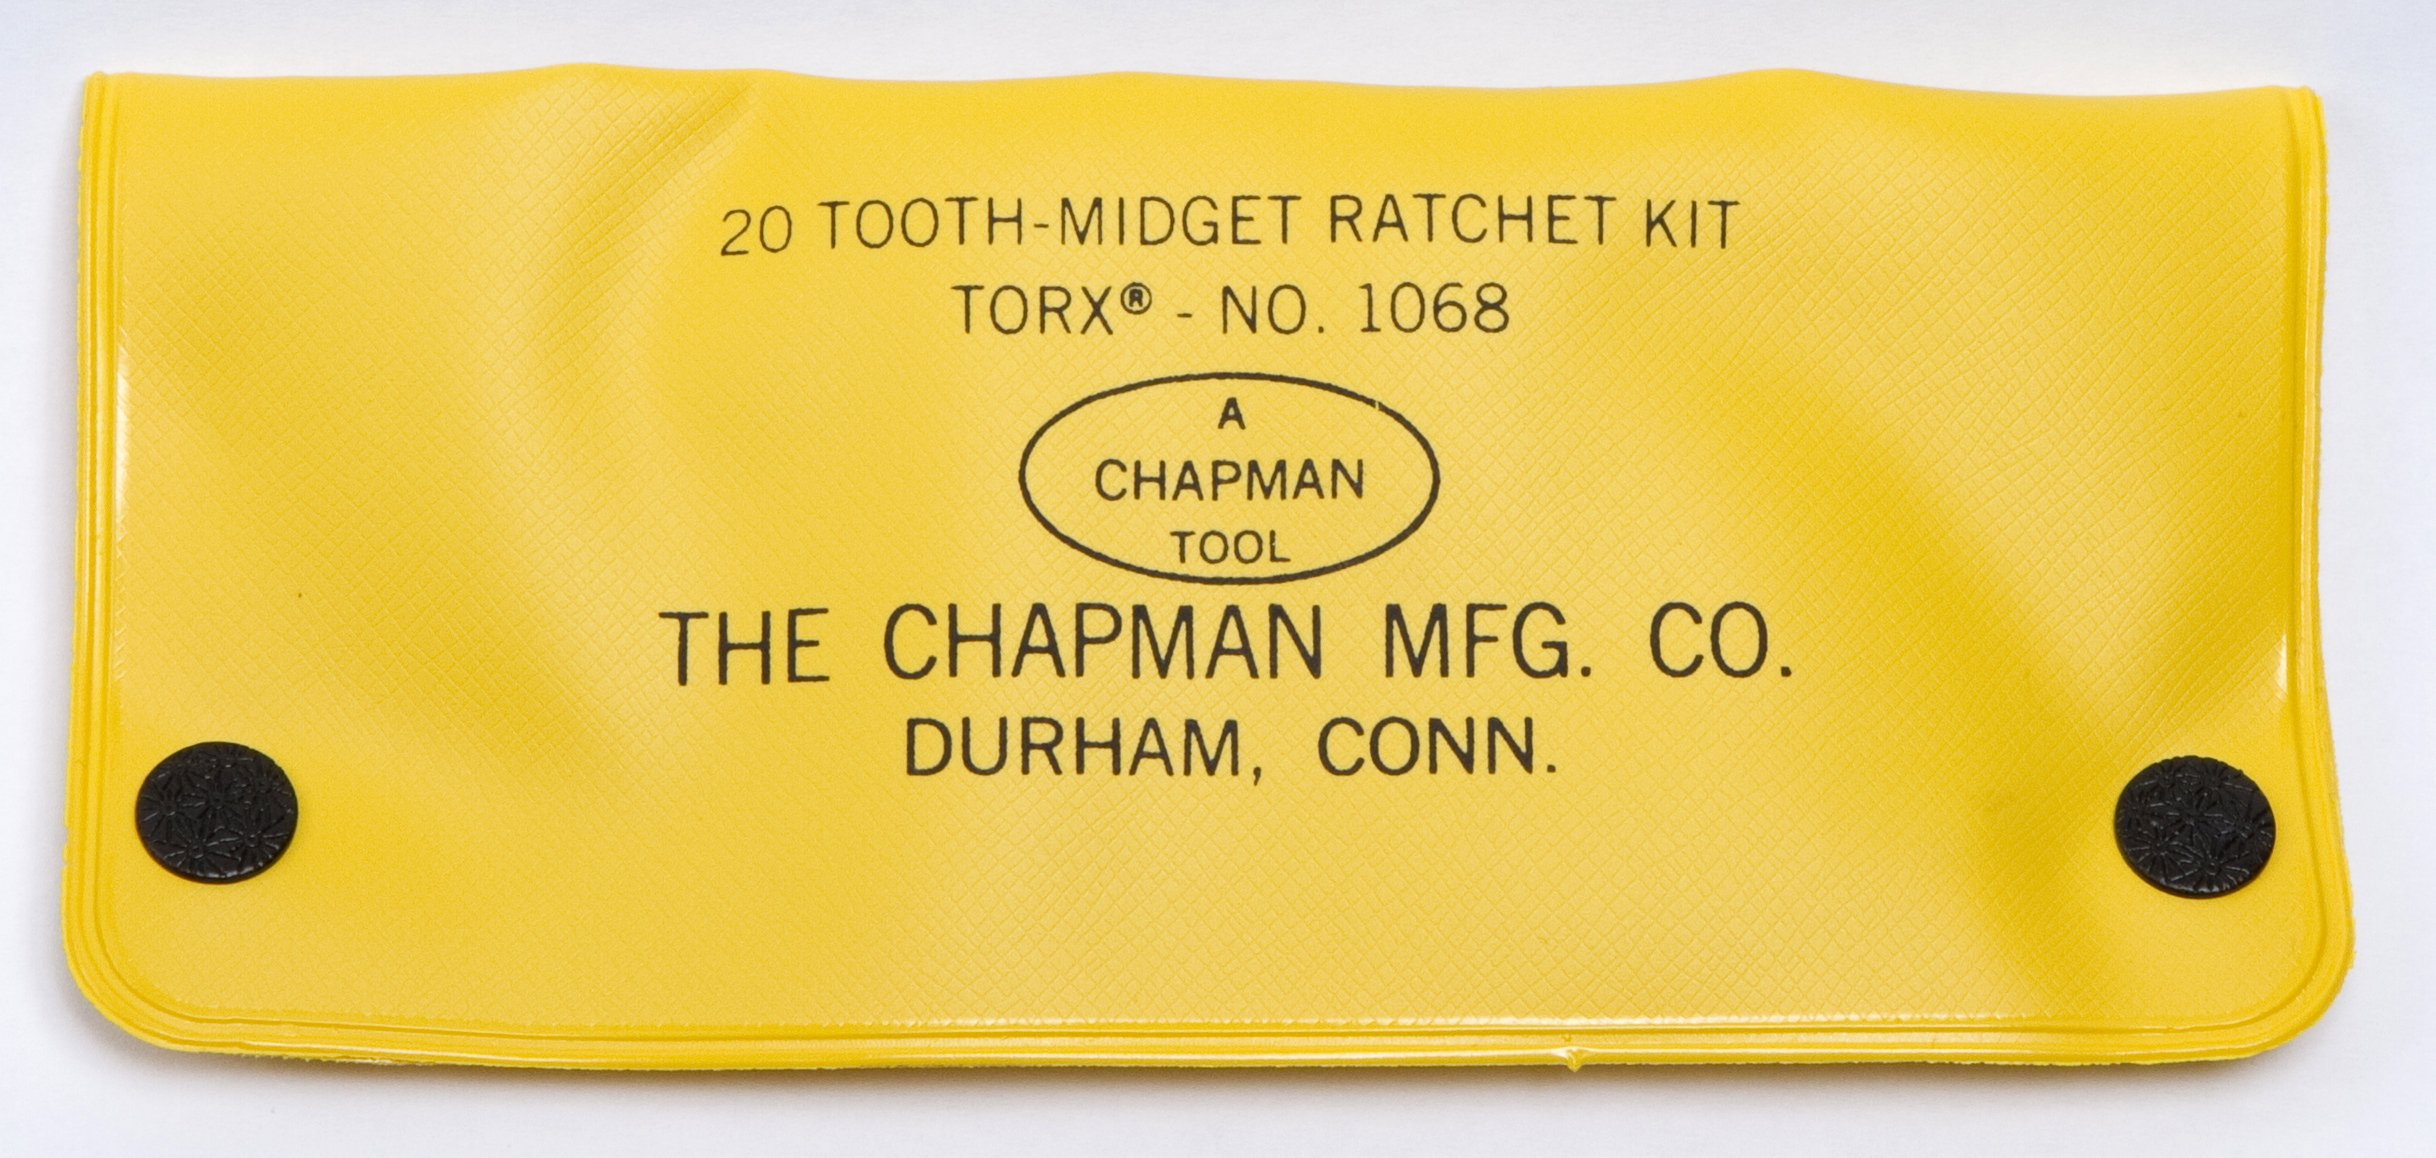 Chapman MFG 1068 Star Bits that Fit Torx Screws, Screwdriver Kit 9 Pieces - Includes Midget Ratchet, 7 Star Insert Bits and 1 Spinner packed in a Heavy Duty Vinyl Case all Made in the USA by Chapman MFG (Image #2)